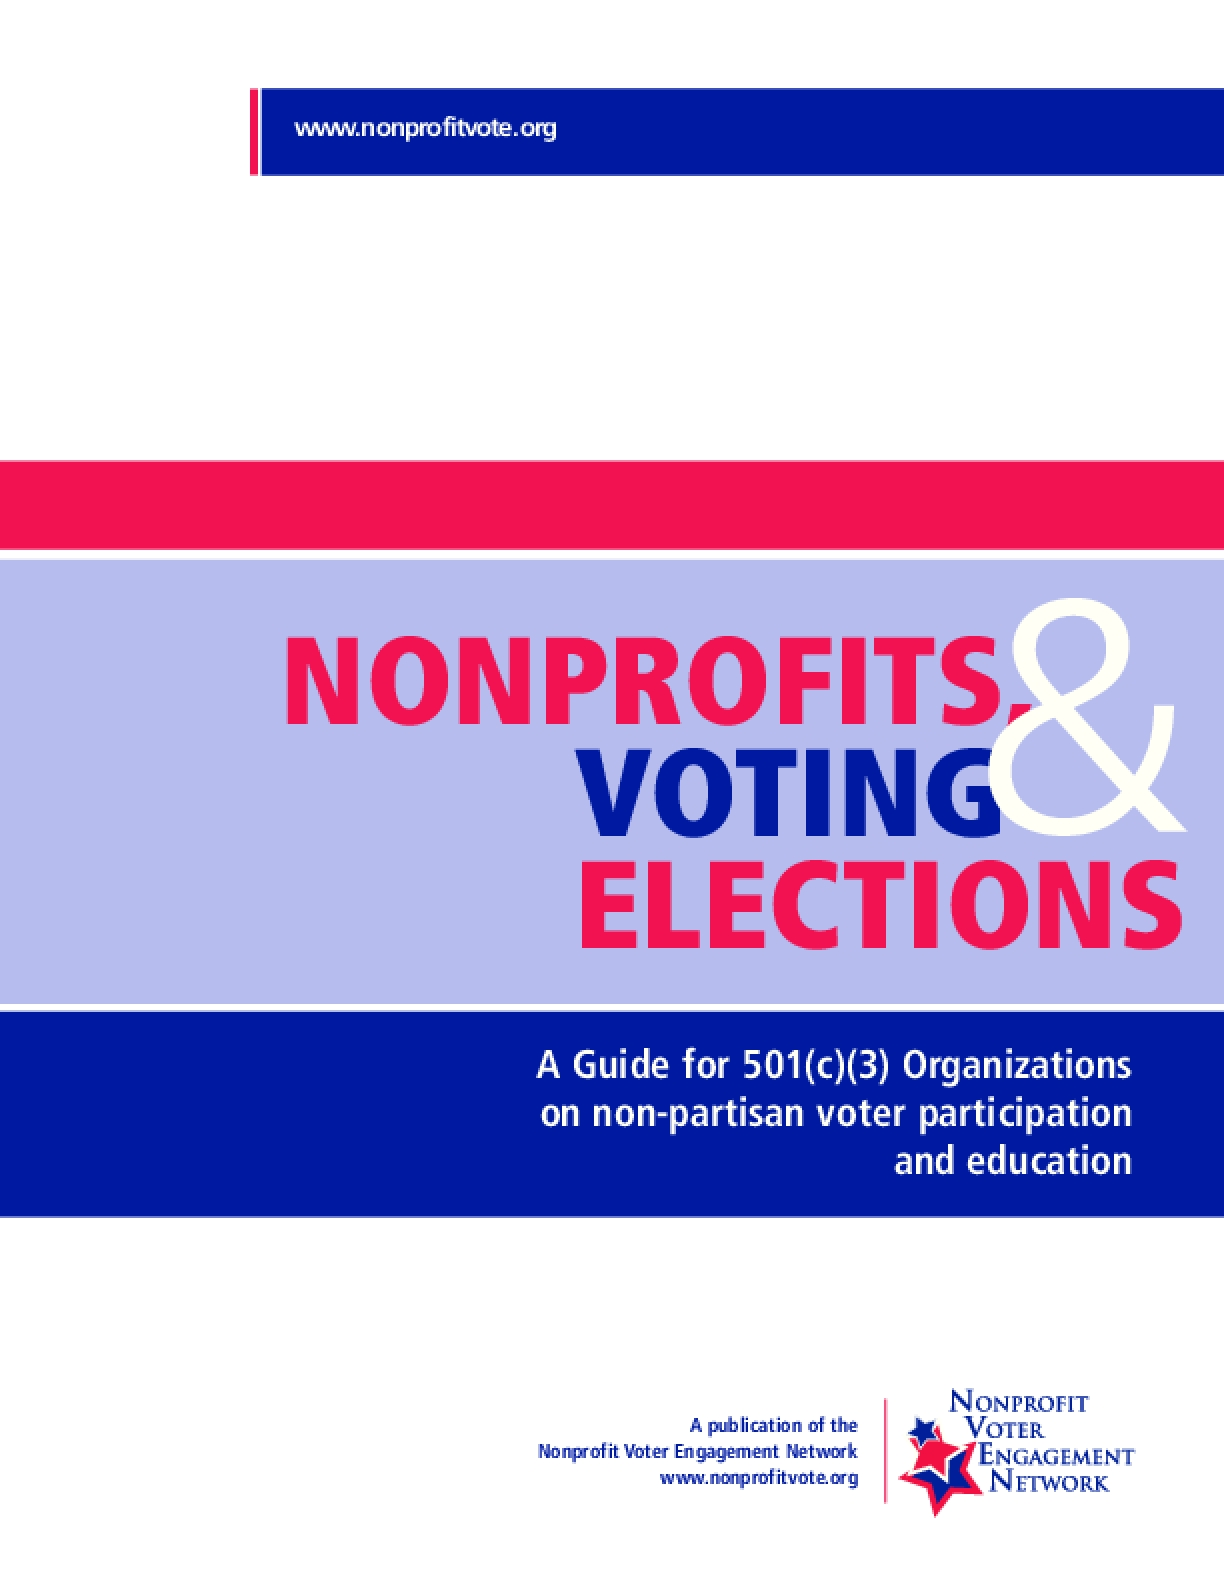 Nonprofits, Voting & Elections